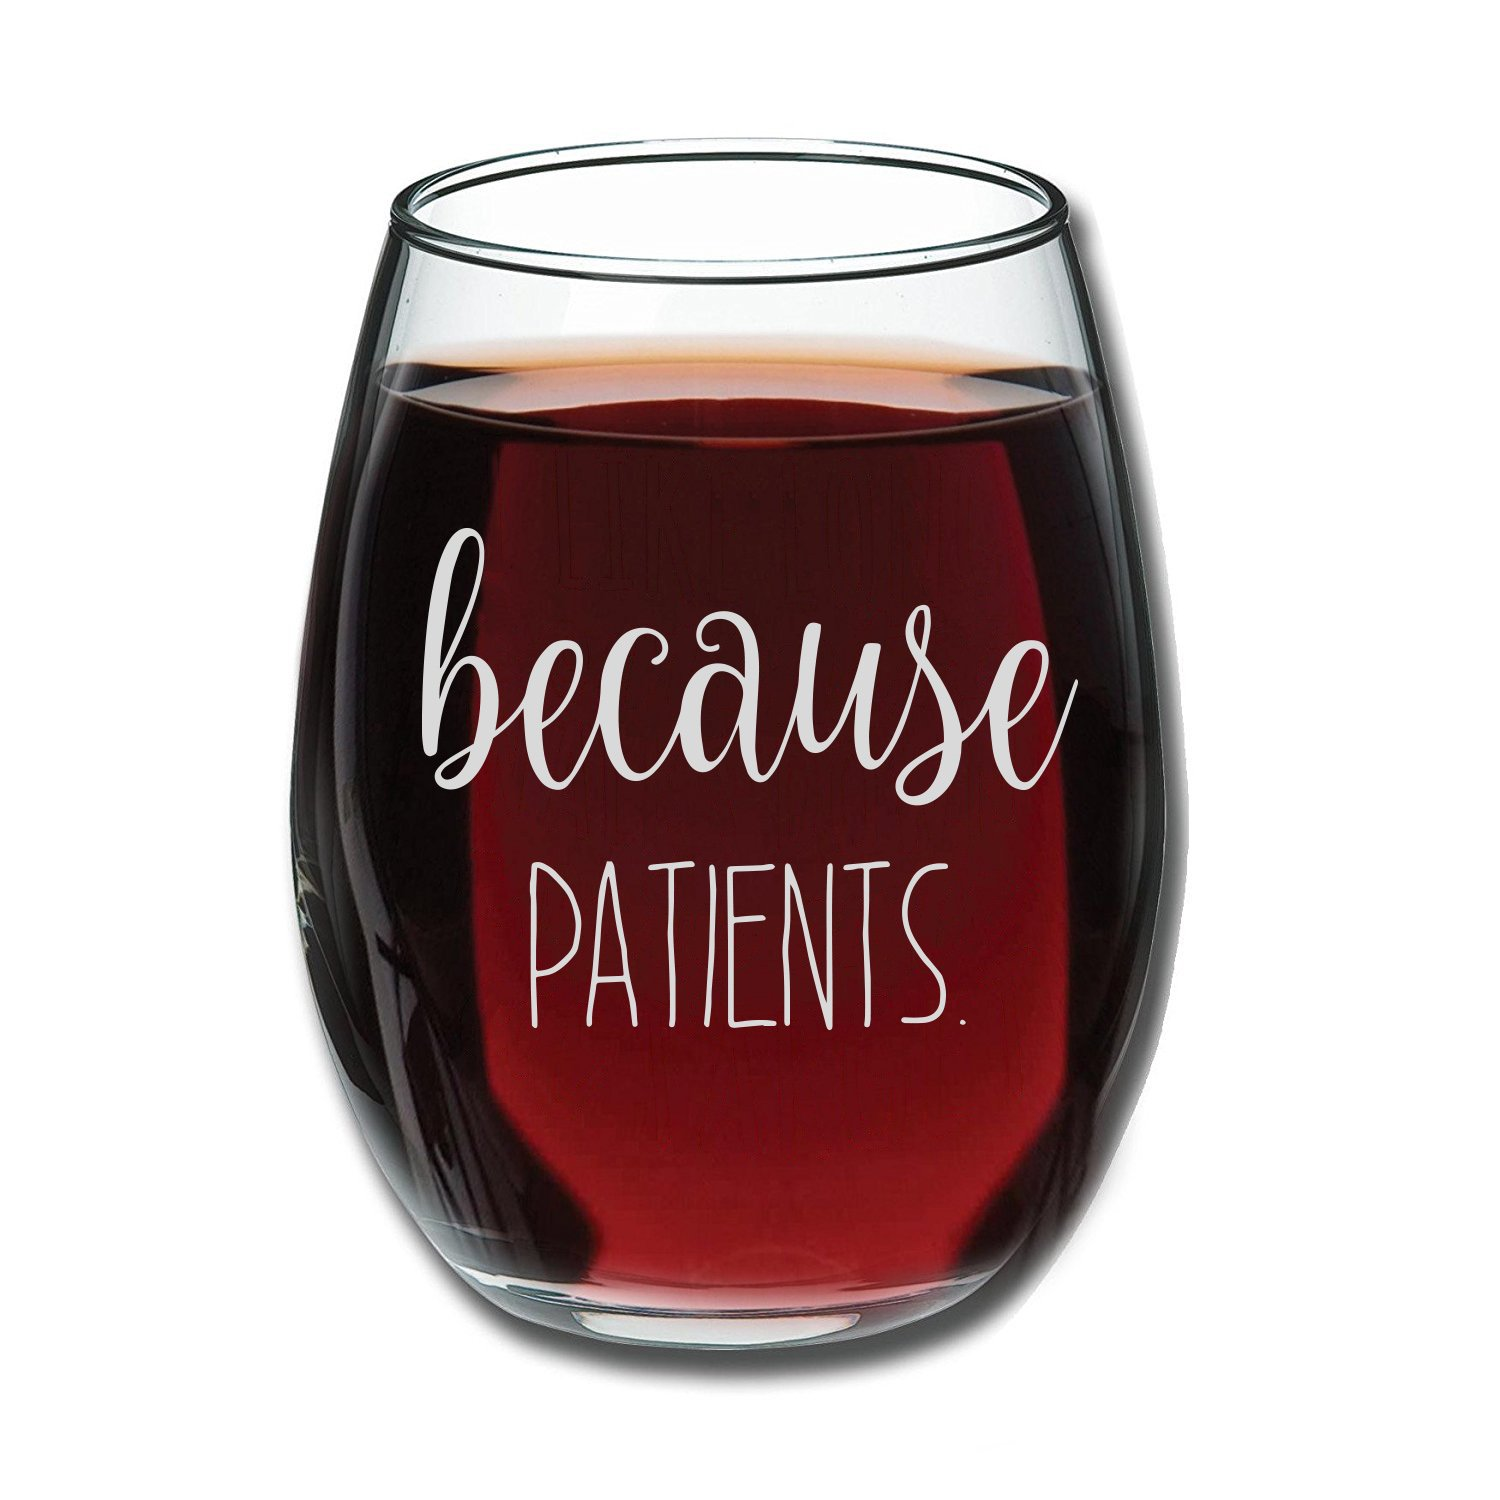 Because Patients Funny Stemless Wine Glass 15oz - Unique Gift Idea for Dentist, Dental, Medical, Hygienist, Doctor, Physician, Nurse - Perfect Birthday and Graduation Gifts for Men or Women